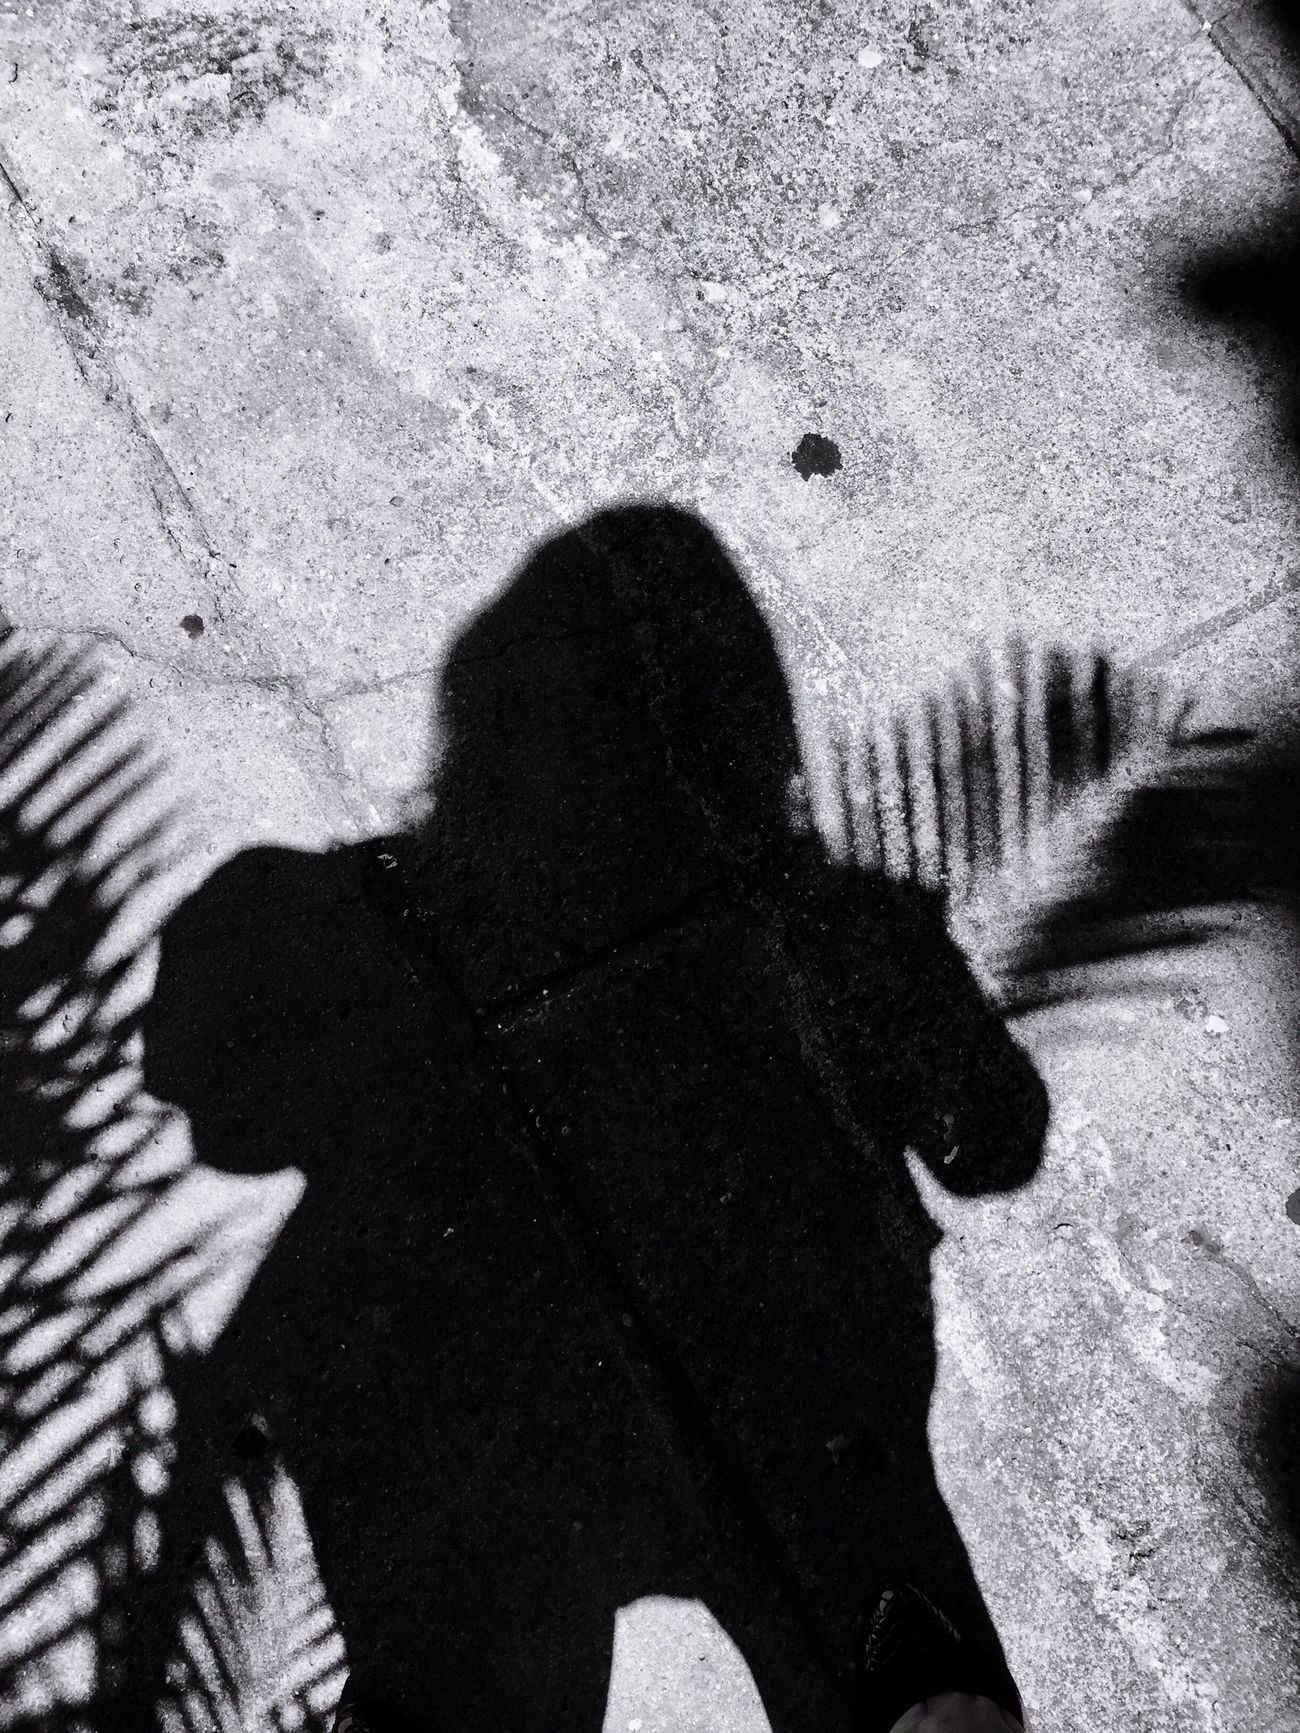 Shadow Play Shadow One Person IPhoneArtism Full Length IPhoneography Palm Tree Blackandwhite Photography Blackandwhite Shapes Black & White